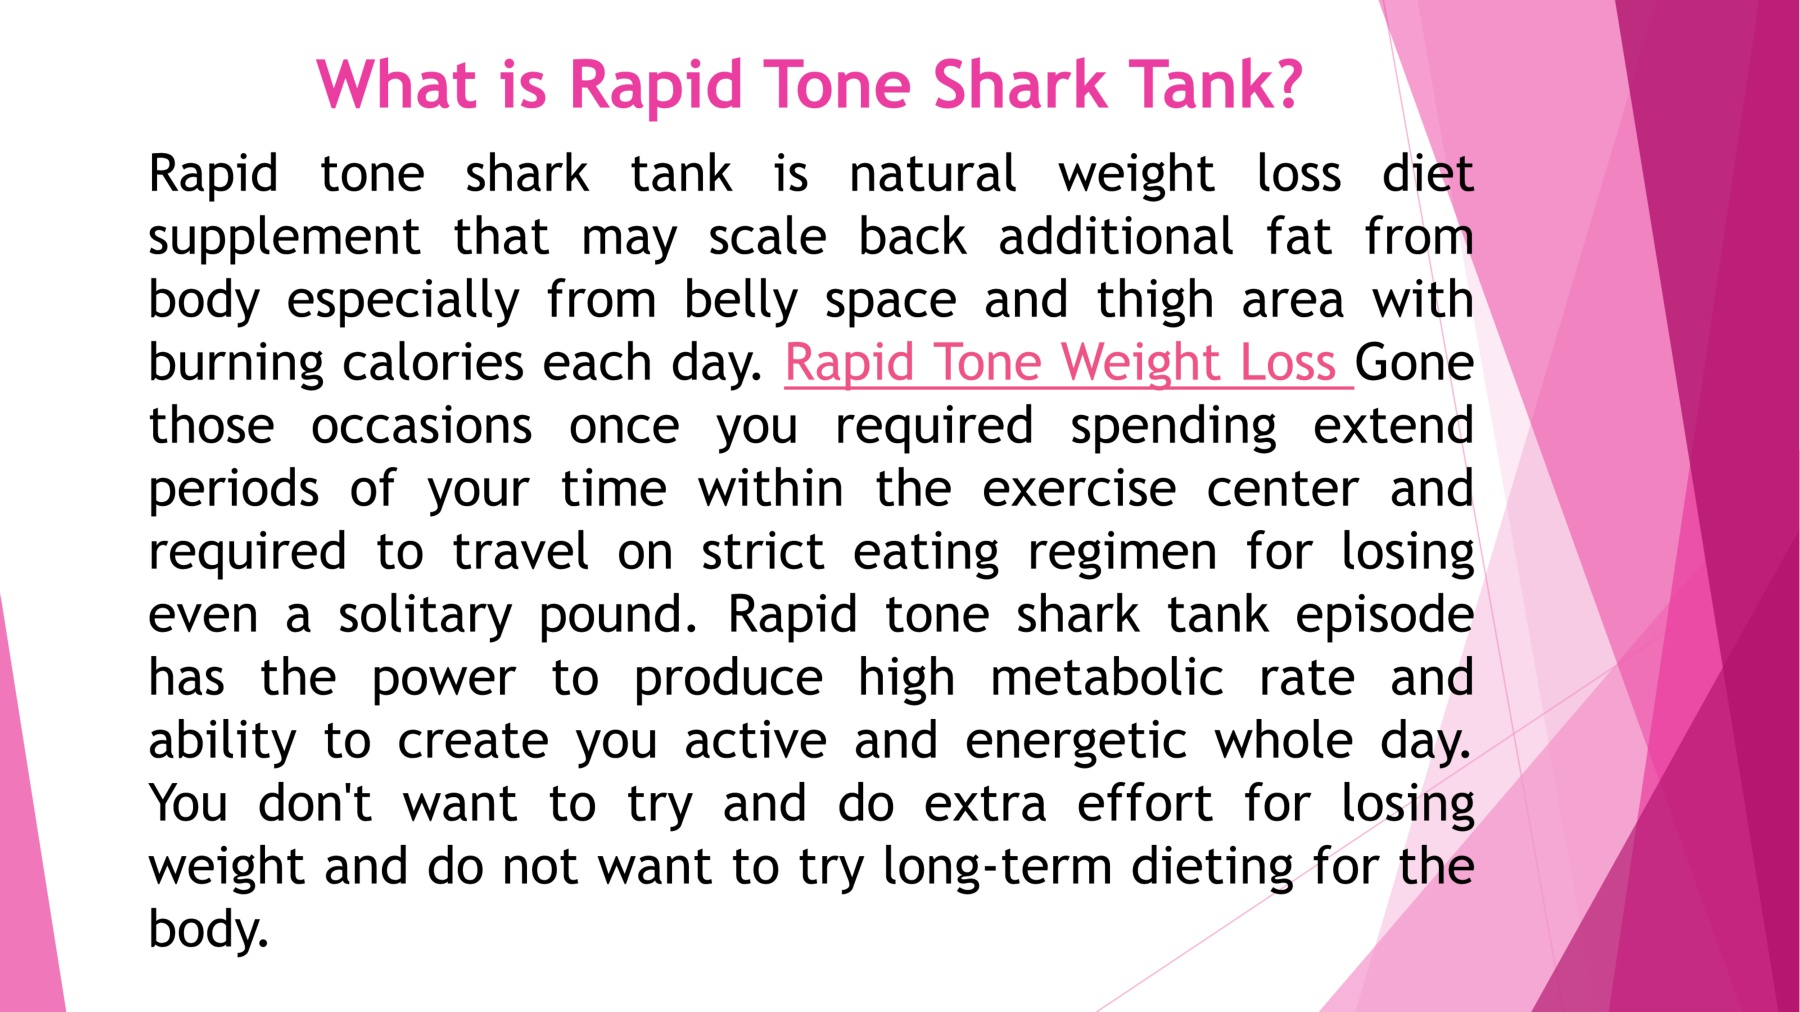 Where To Buy Rapid Tone Shark Tank Weight Loss Price Scam And Buy